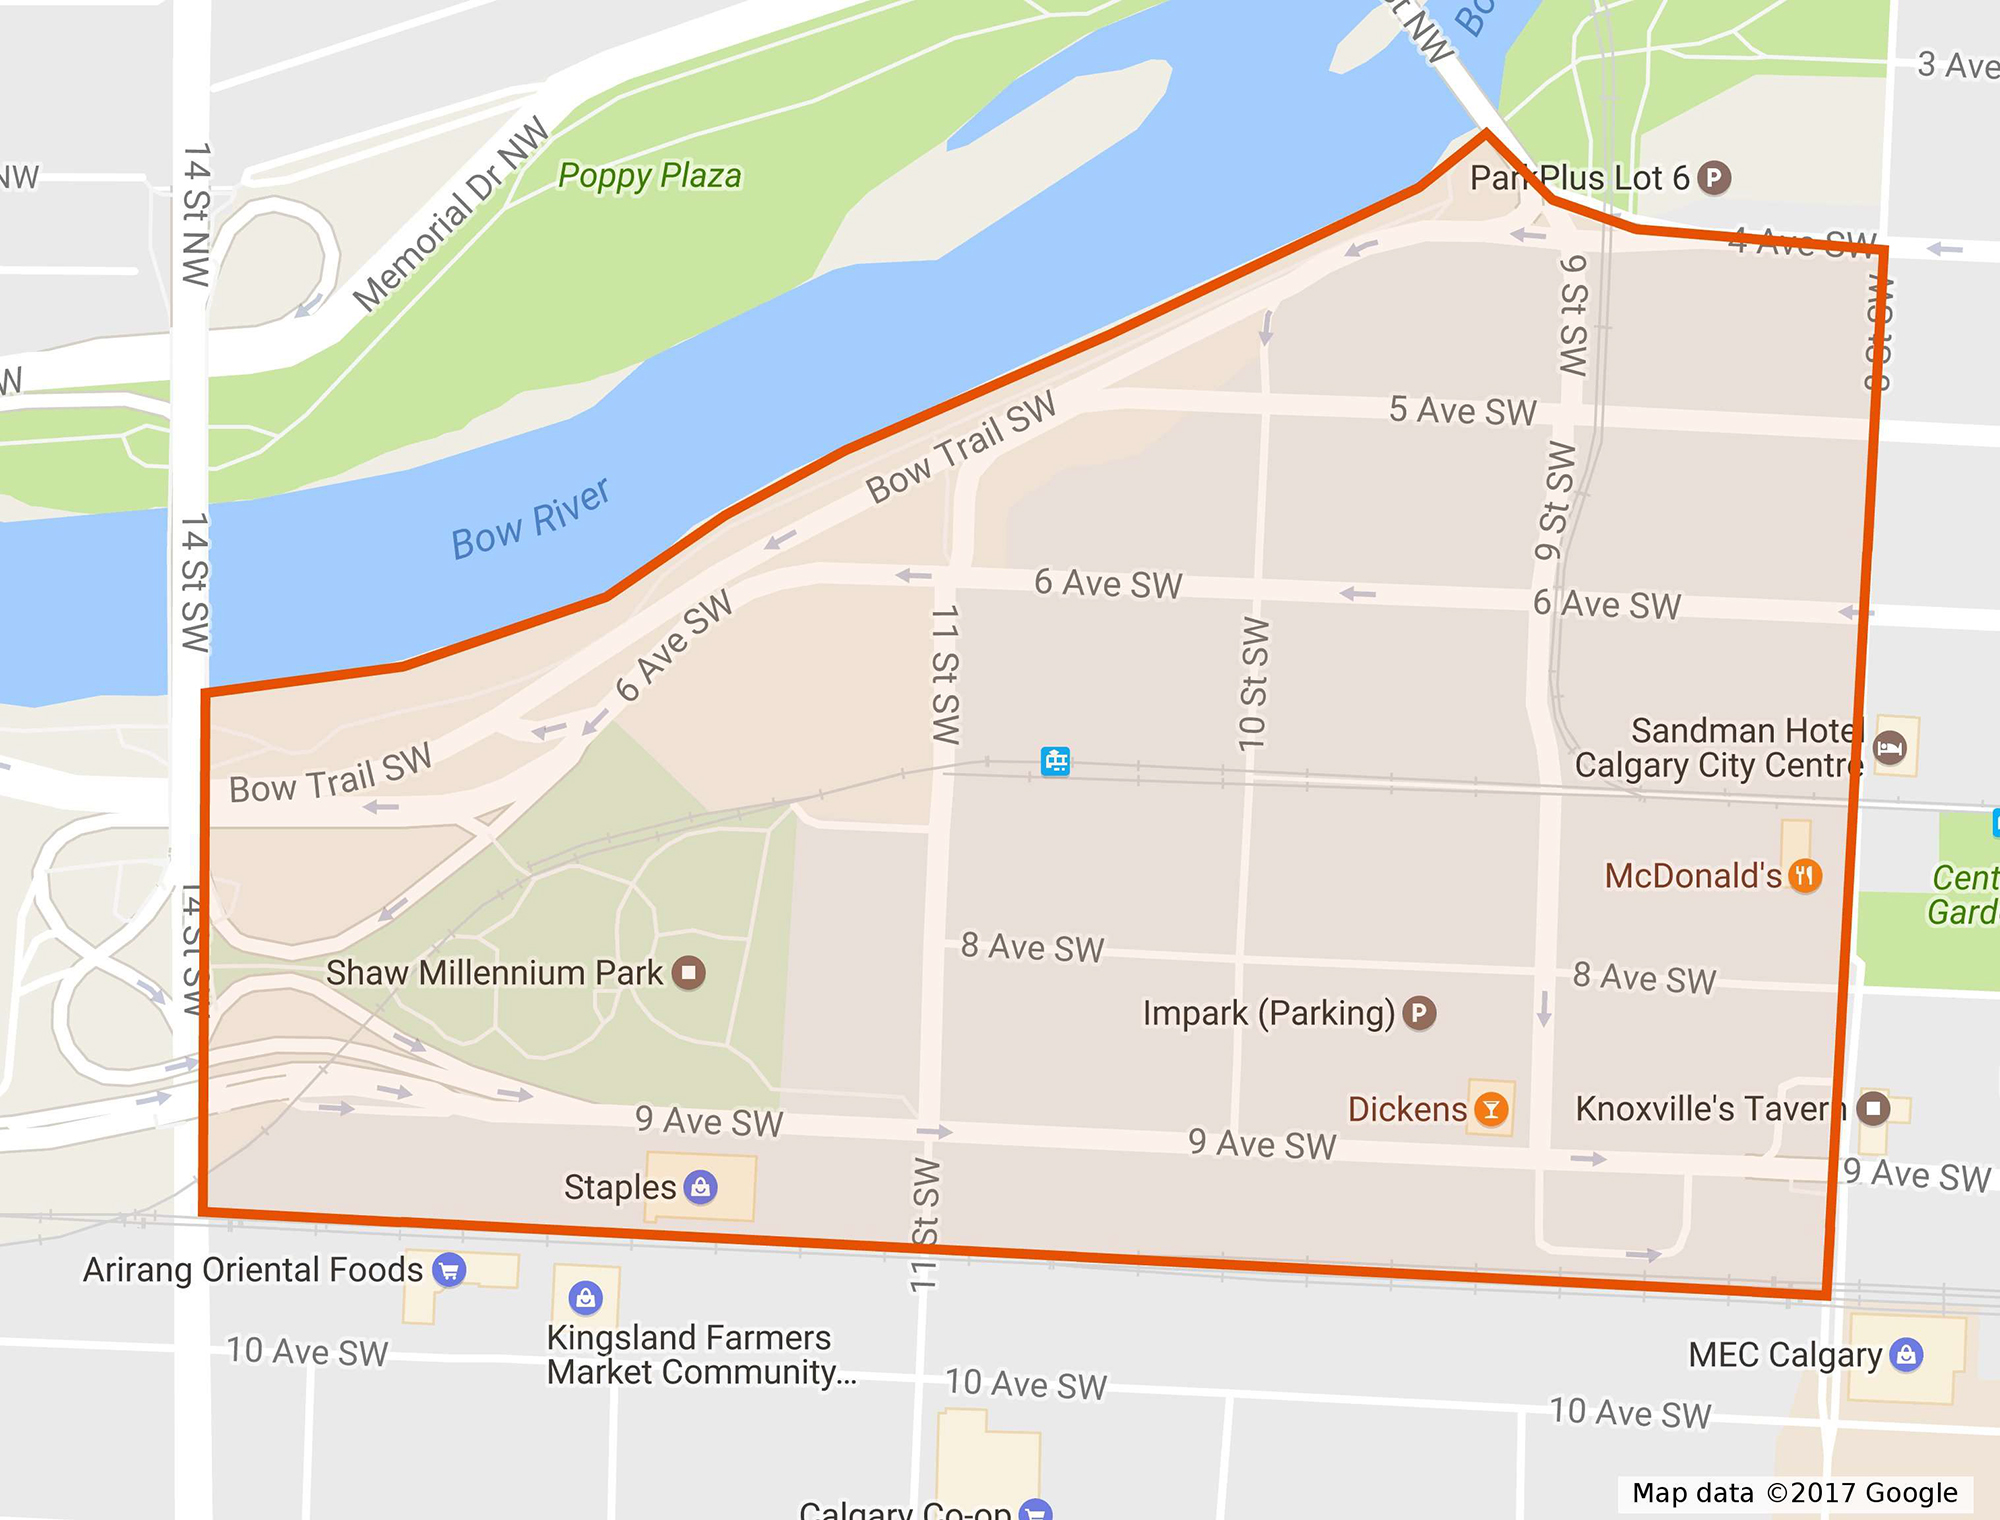 Downtown West End Area - click for larger map